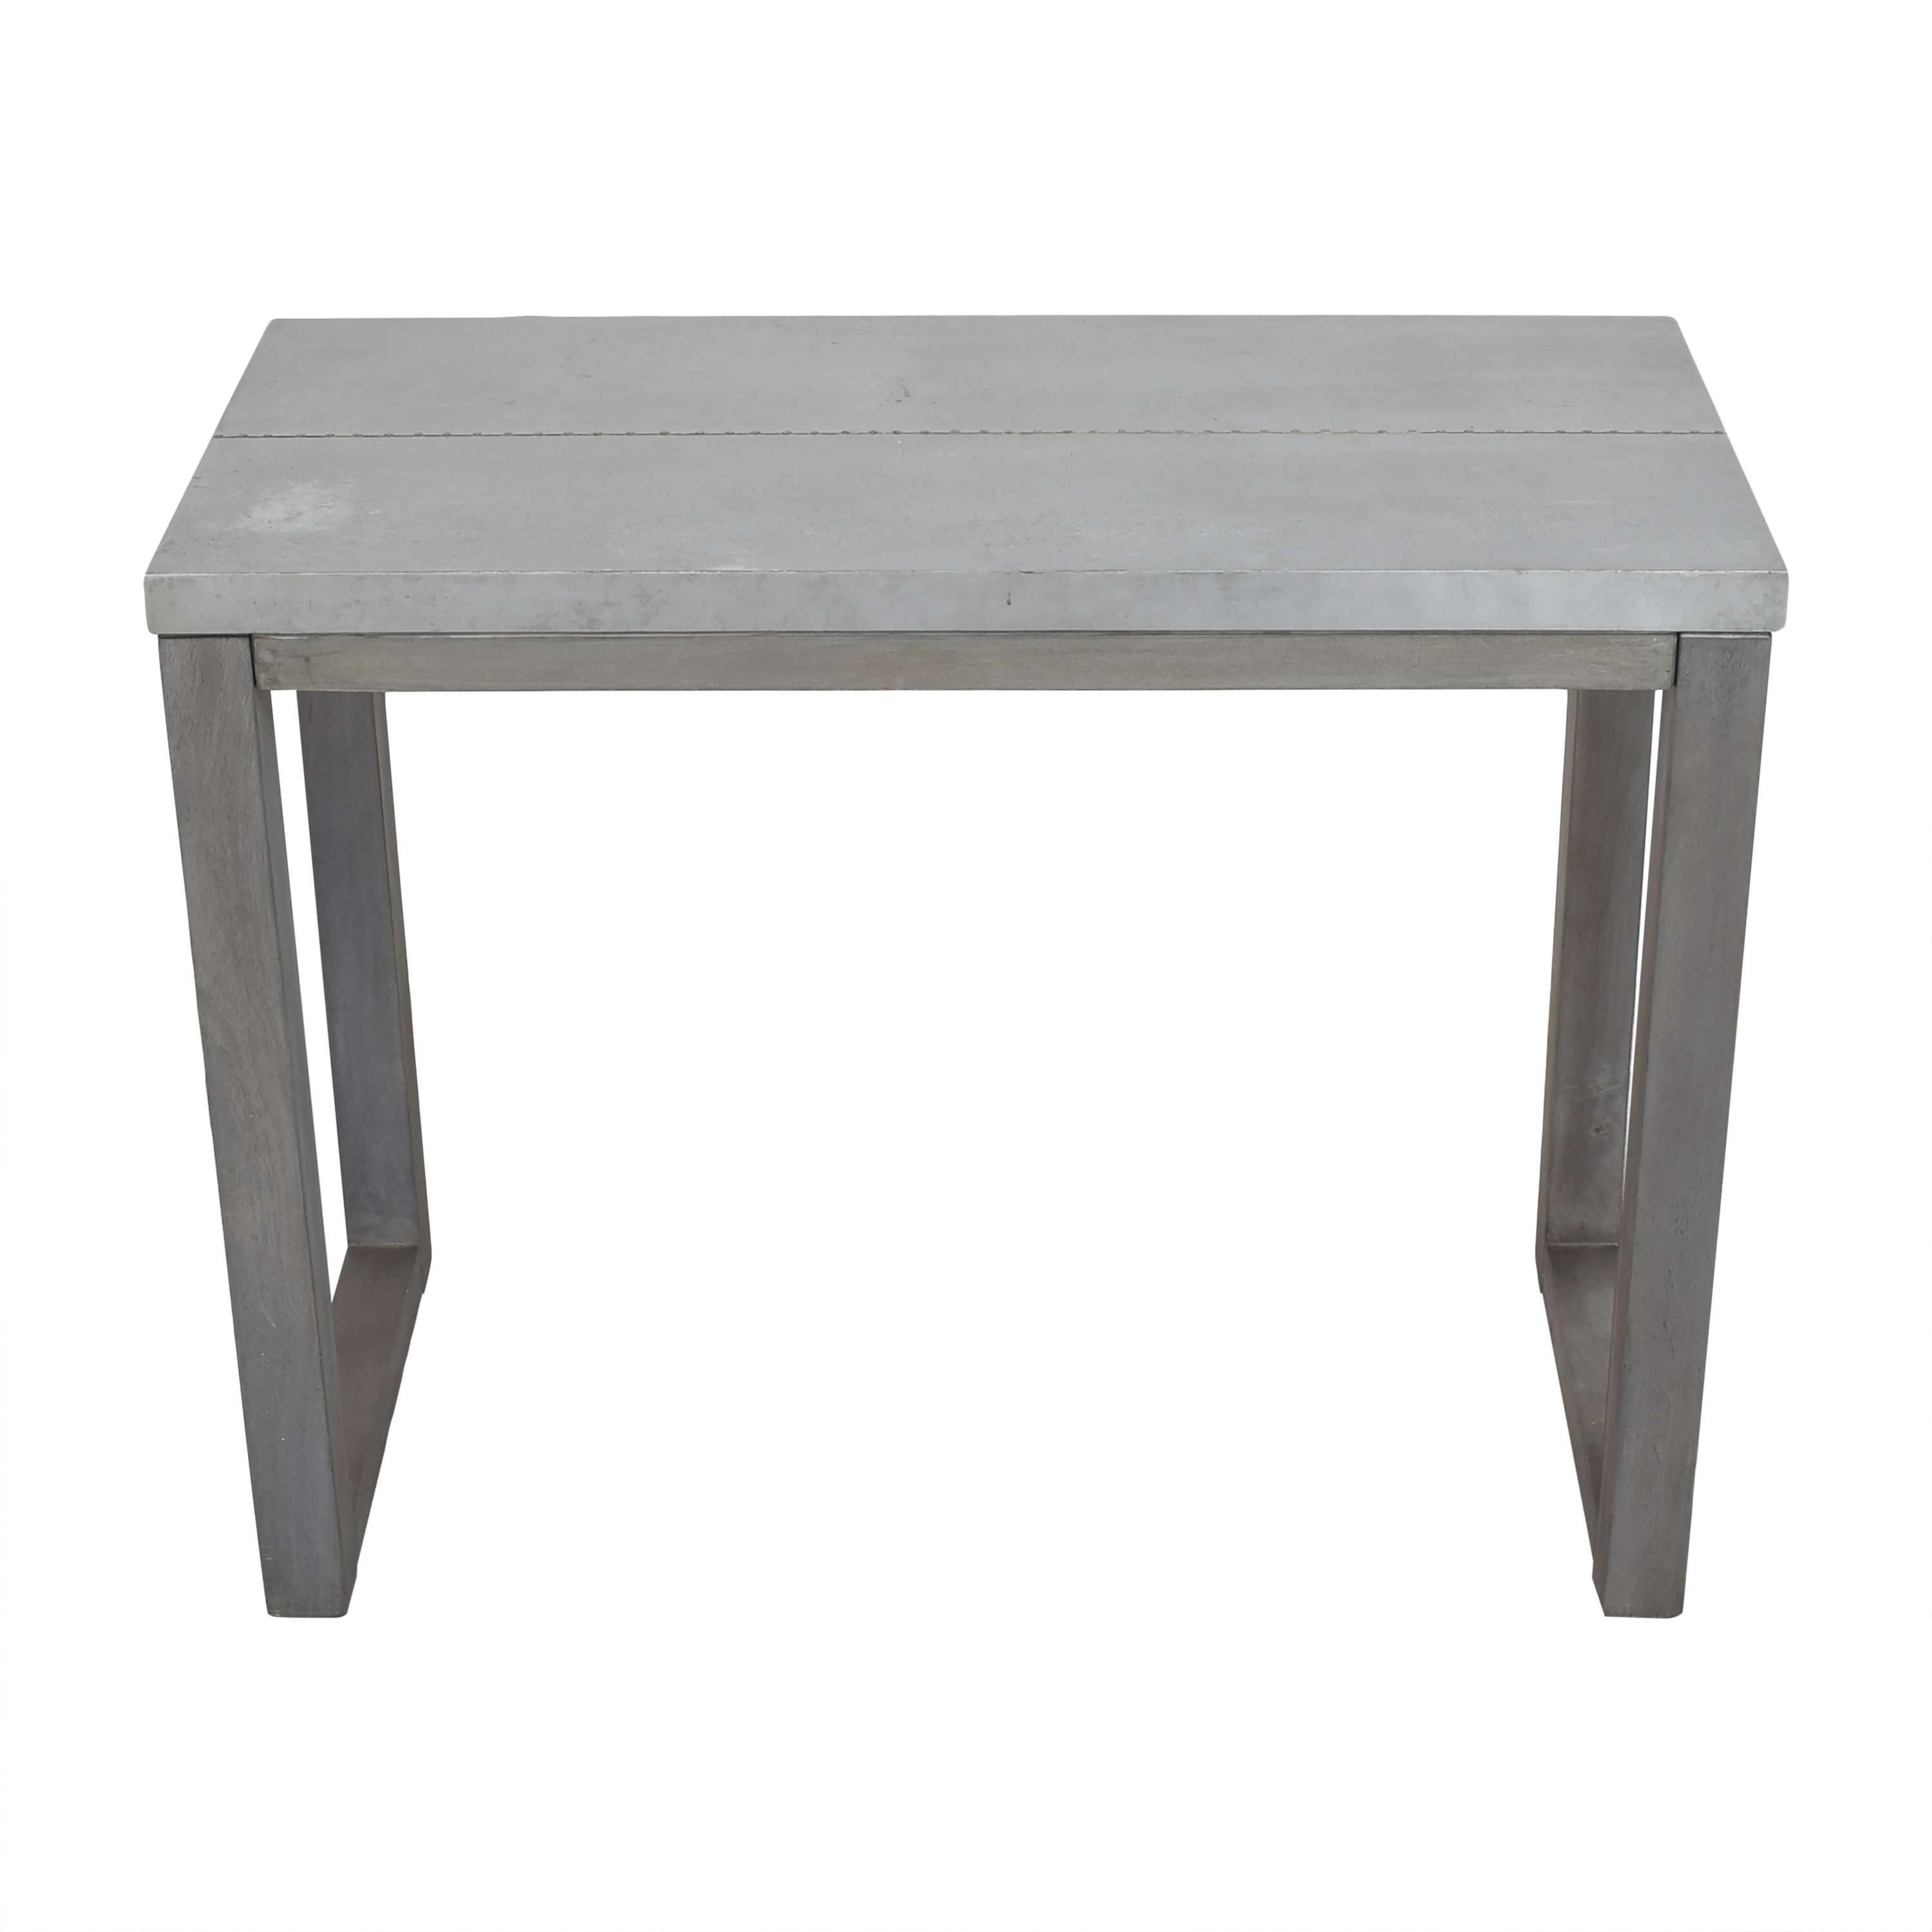 CB2 CB2 Stern Counter Dining Table ma